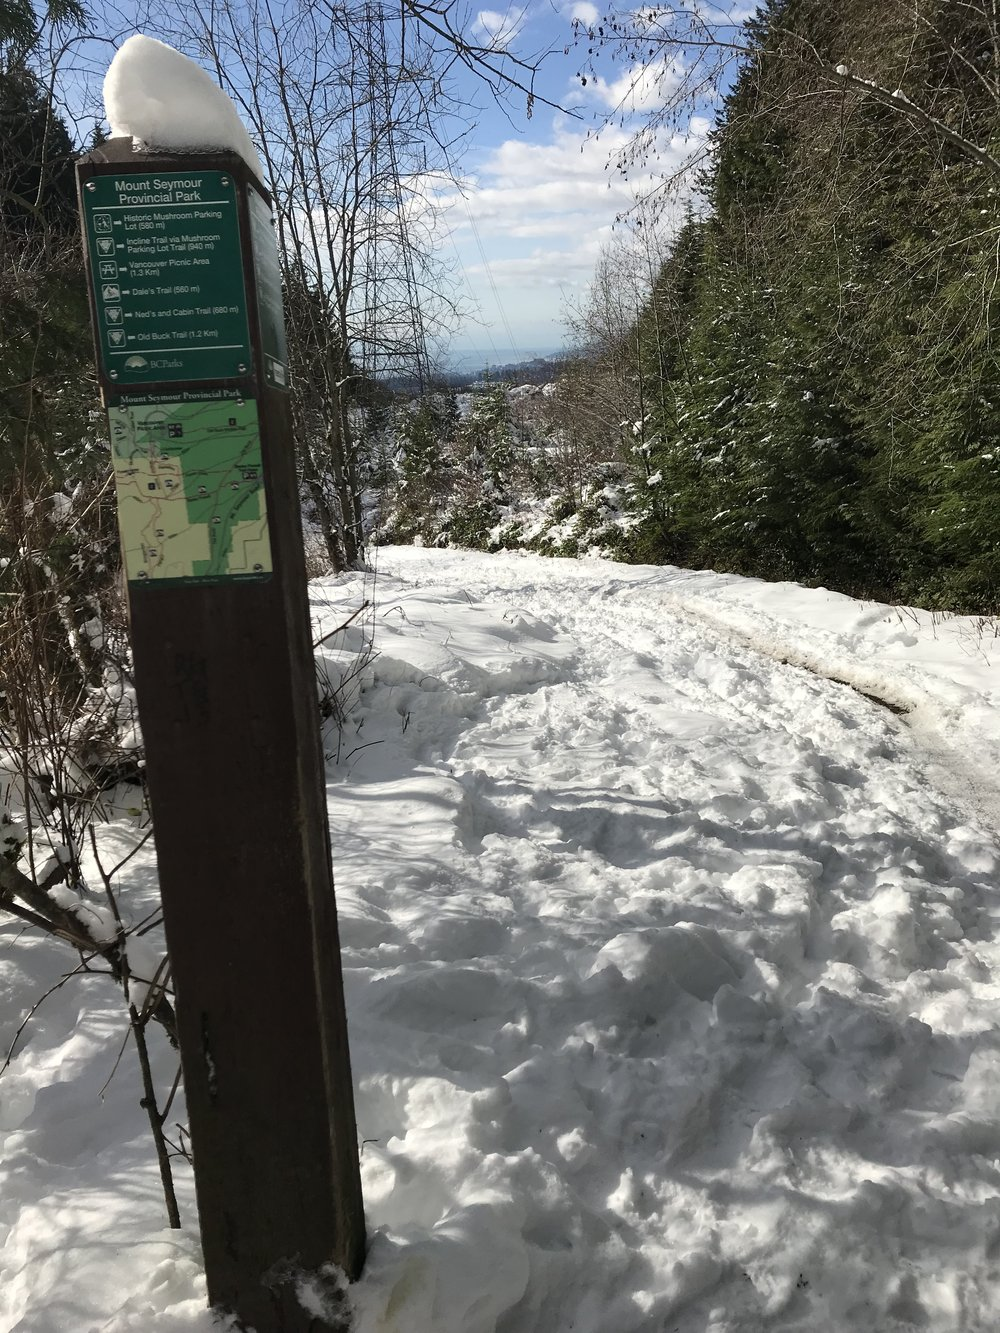 What Little Snow Weve Had This Winter >> Trail Condition Update February 20th Endless Biking